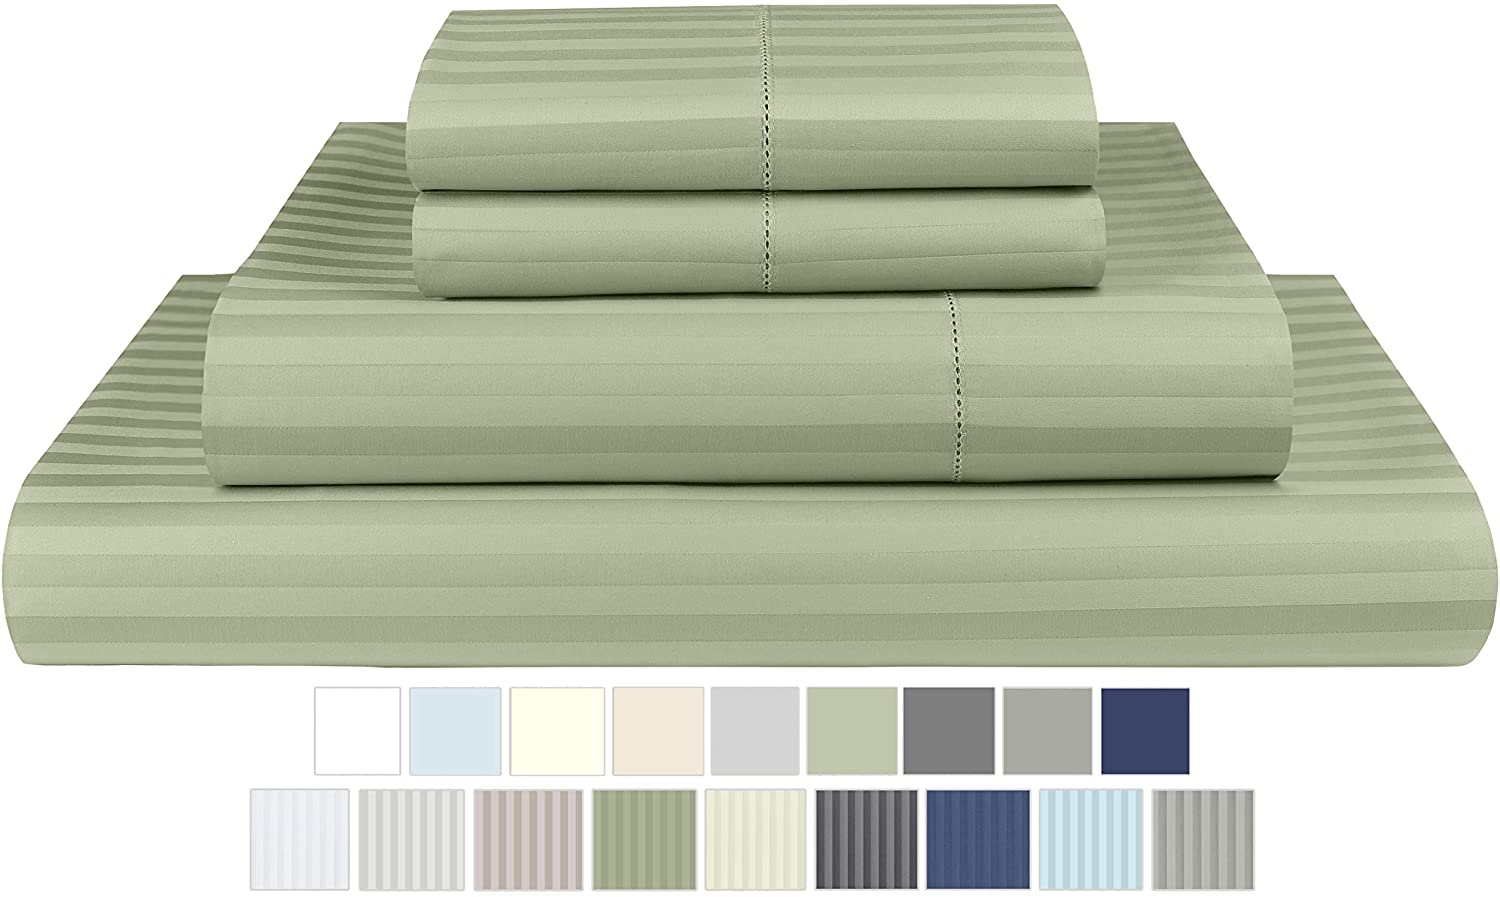 Threadmill Home Linen 600 Thread Count Twin XL Sheets Sets - 1CM Damask Stripe 100% ELS Cotton Sheets for Twin XL Size Bed, Luxury 3 Piece Bedding Set with Deep Pocket Fitted Sheet, Sage